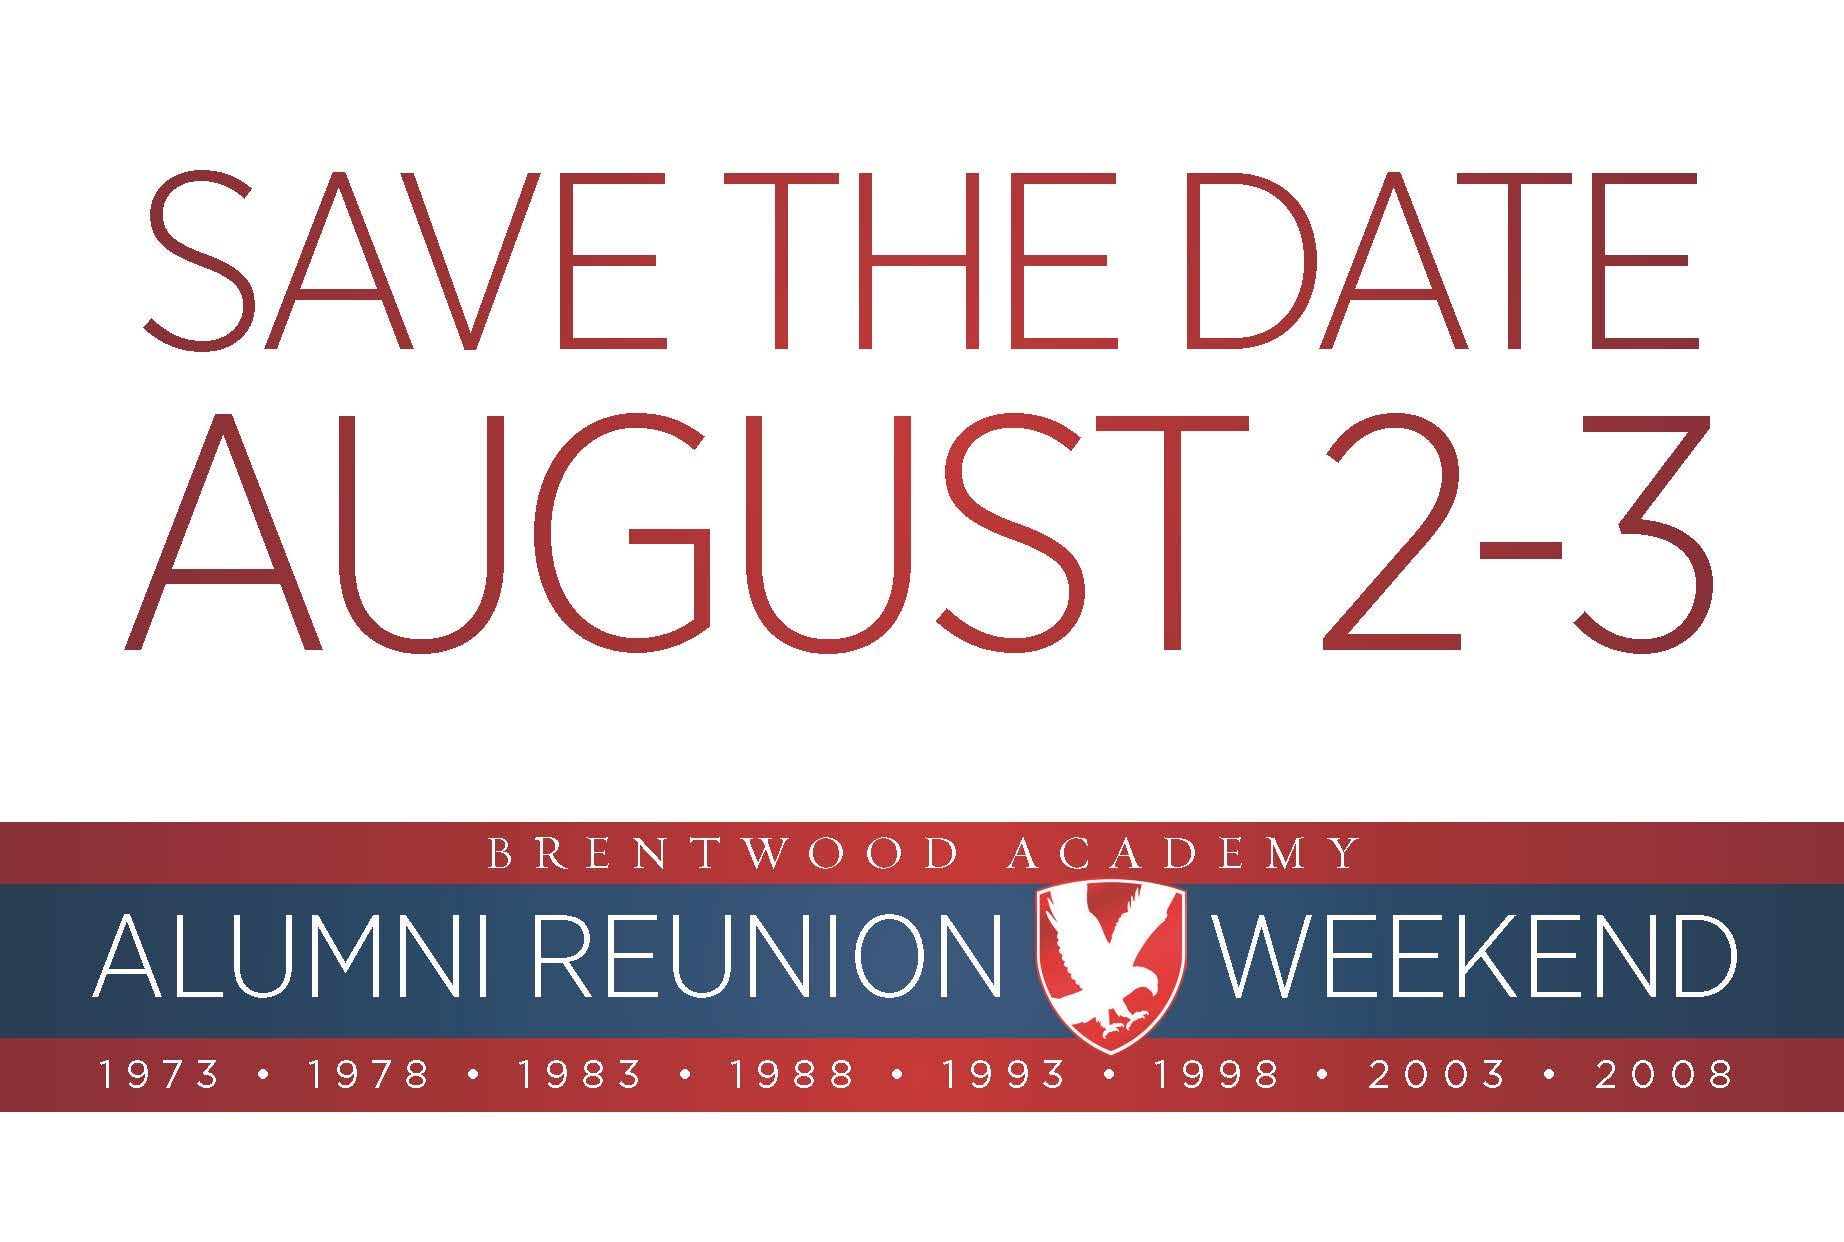 Funny Class Reunion Invitations Related Pictures Fun Class Reunion